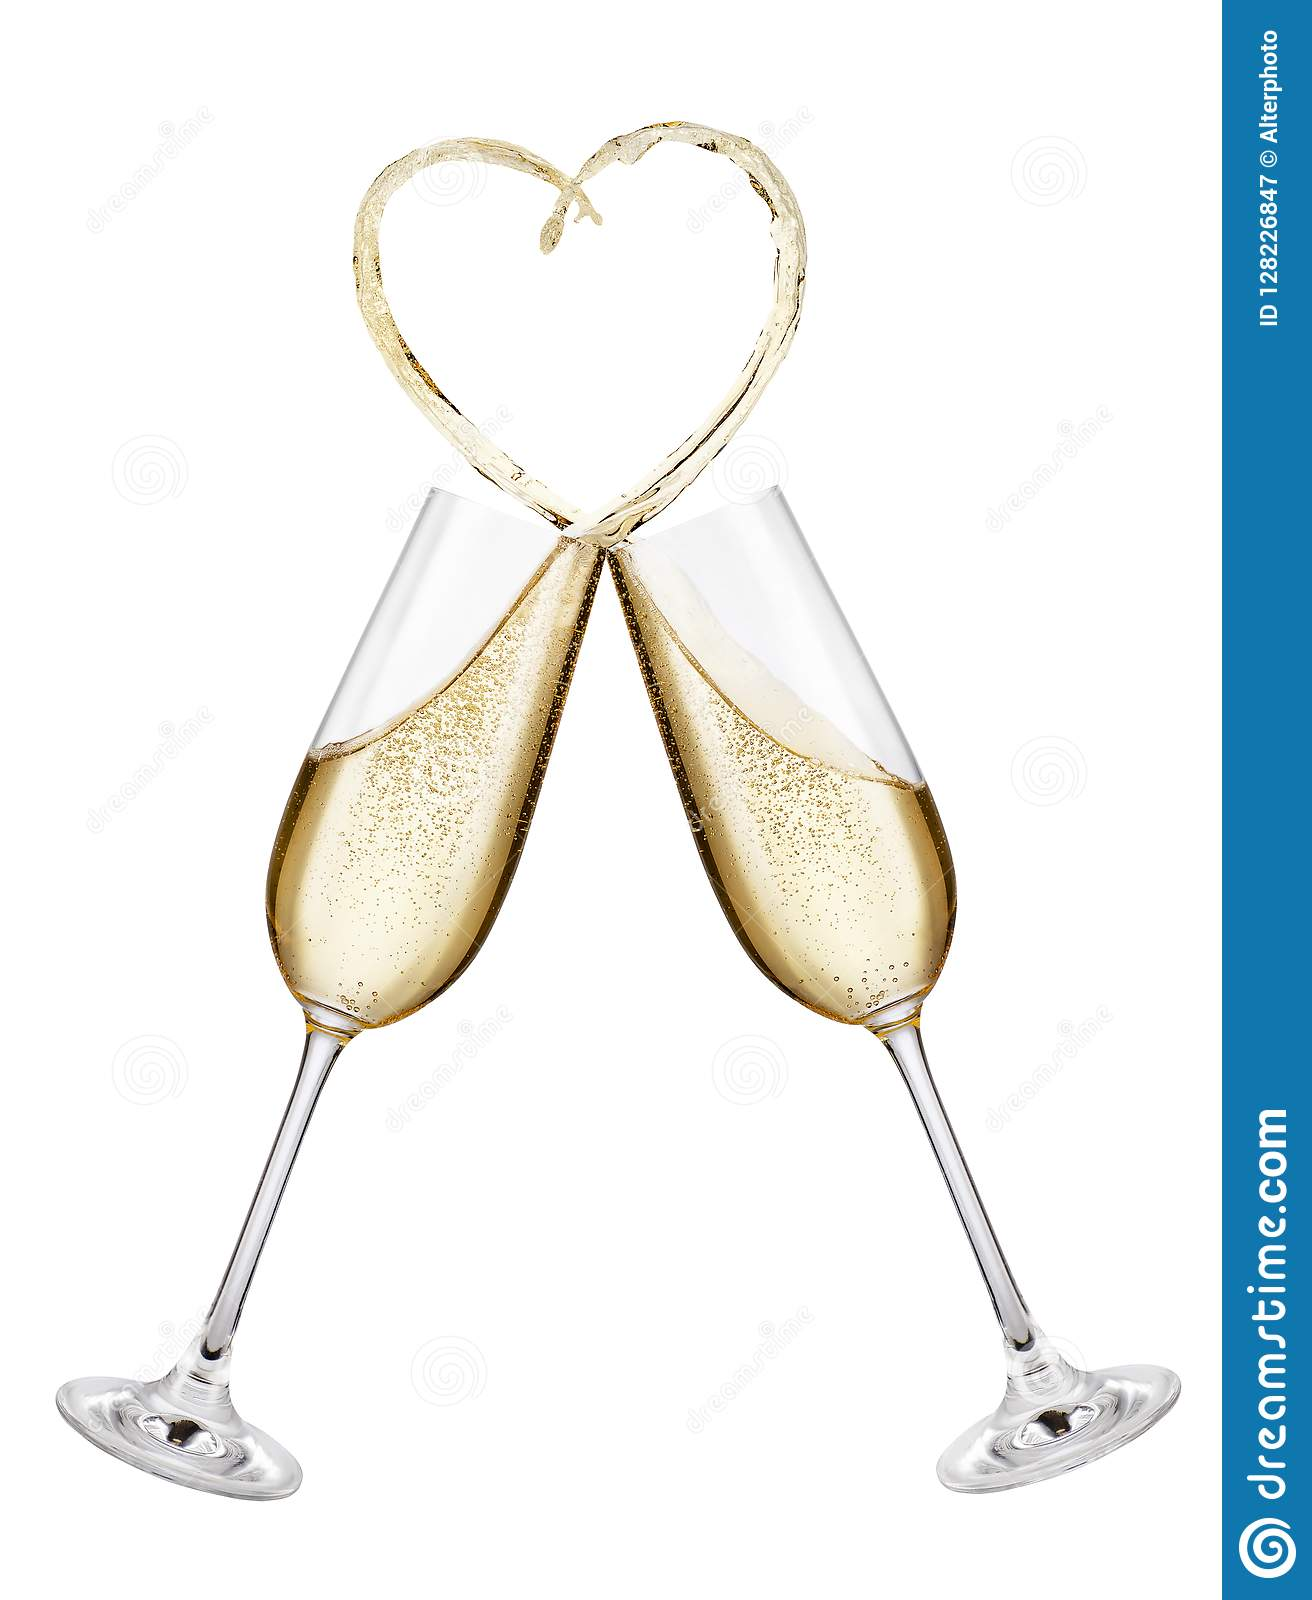 1bc0a96200c8 Glasses of champagne making toast with splash in the shape of heart  isolated on white background